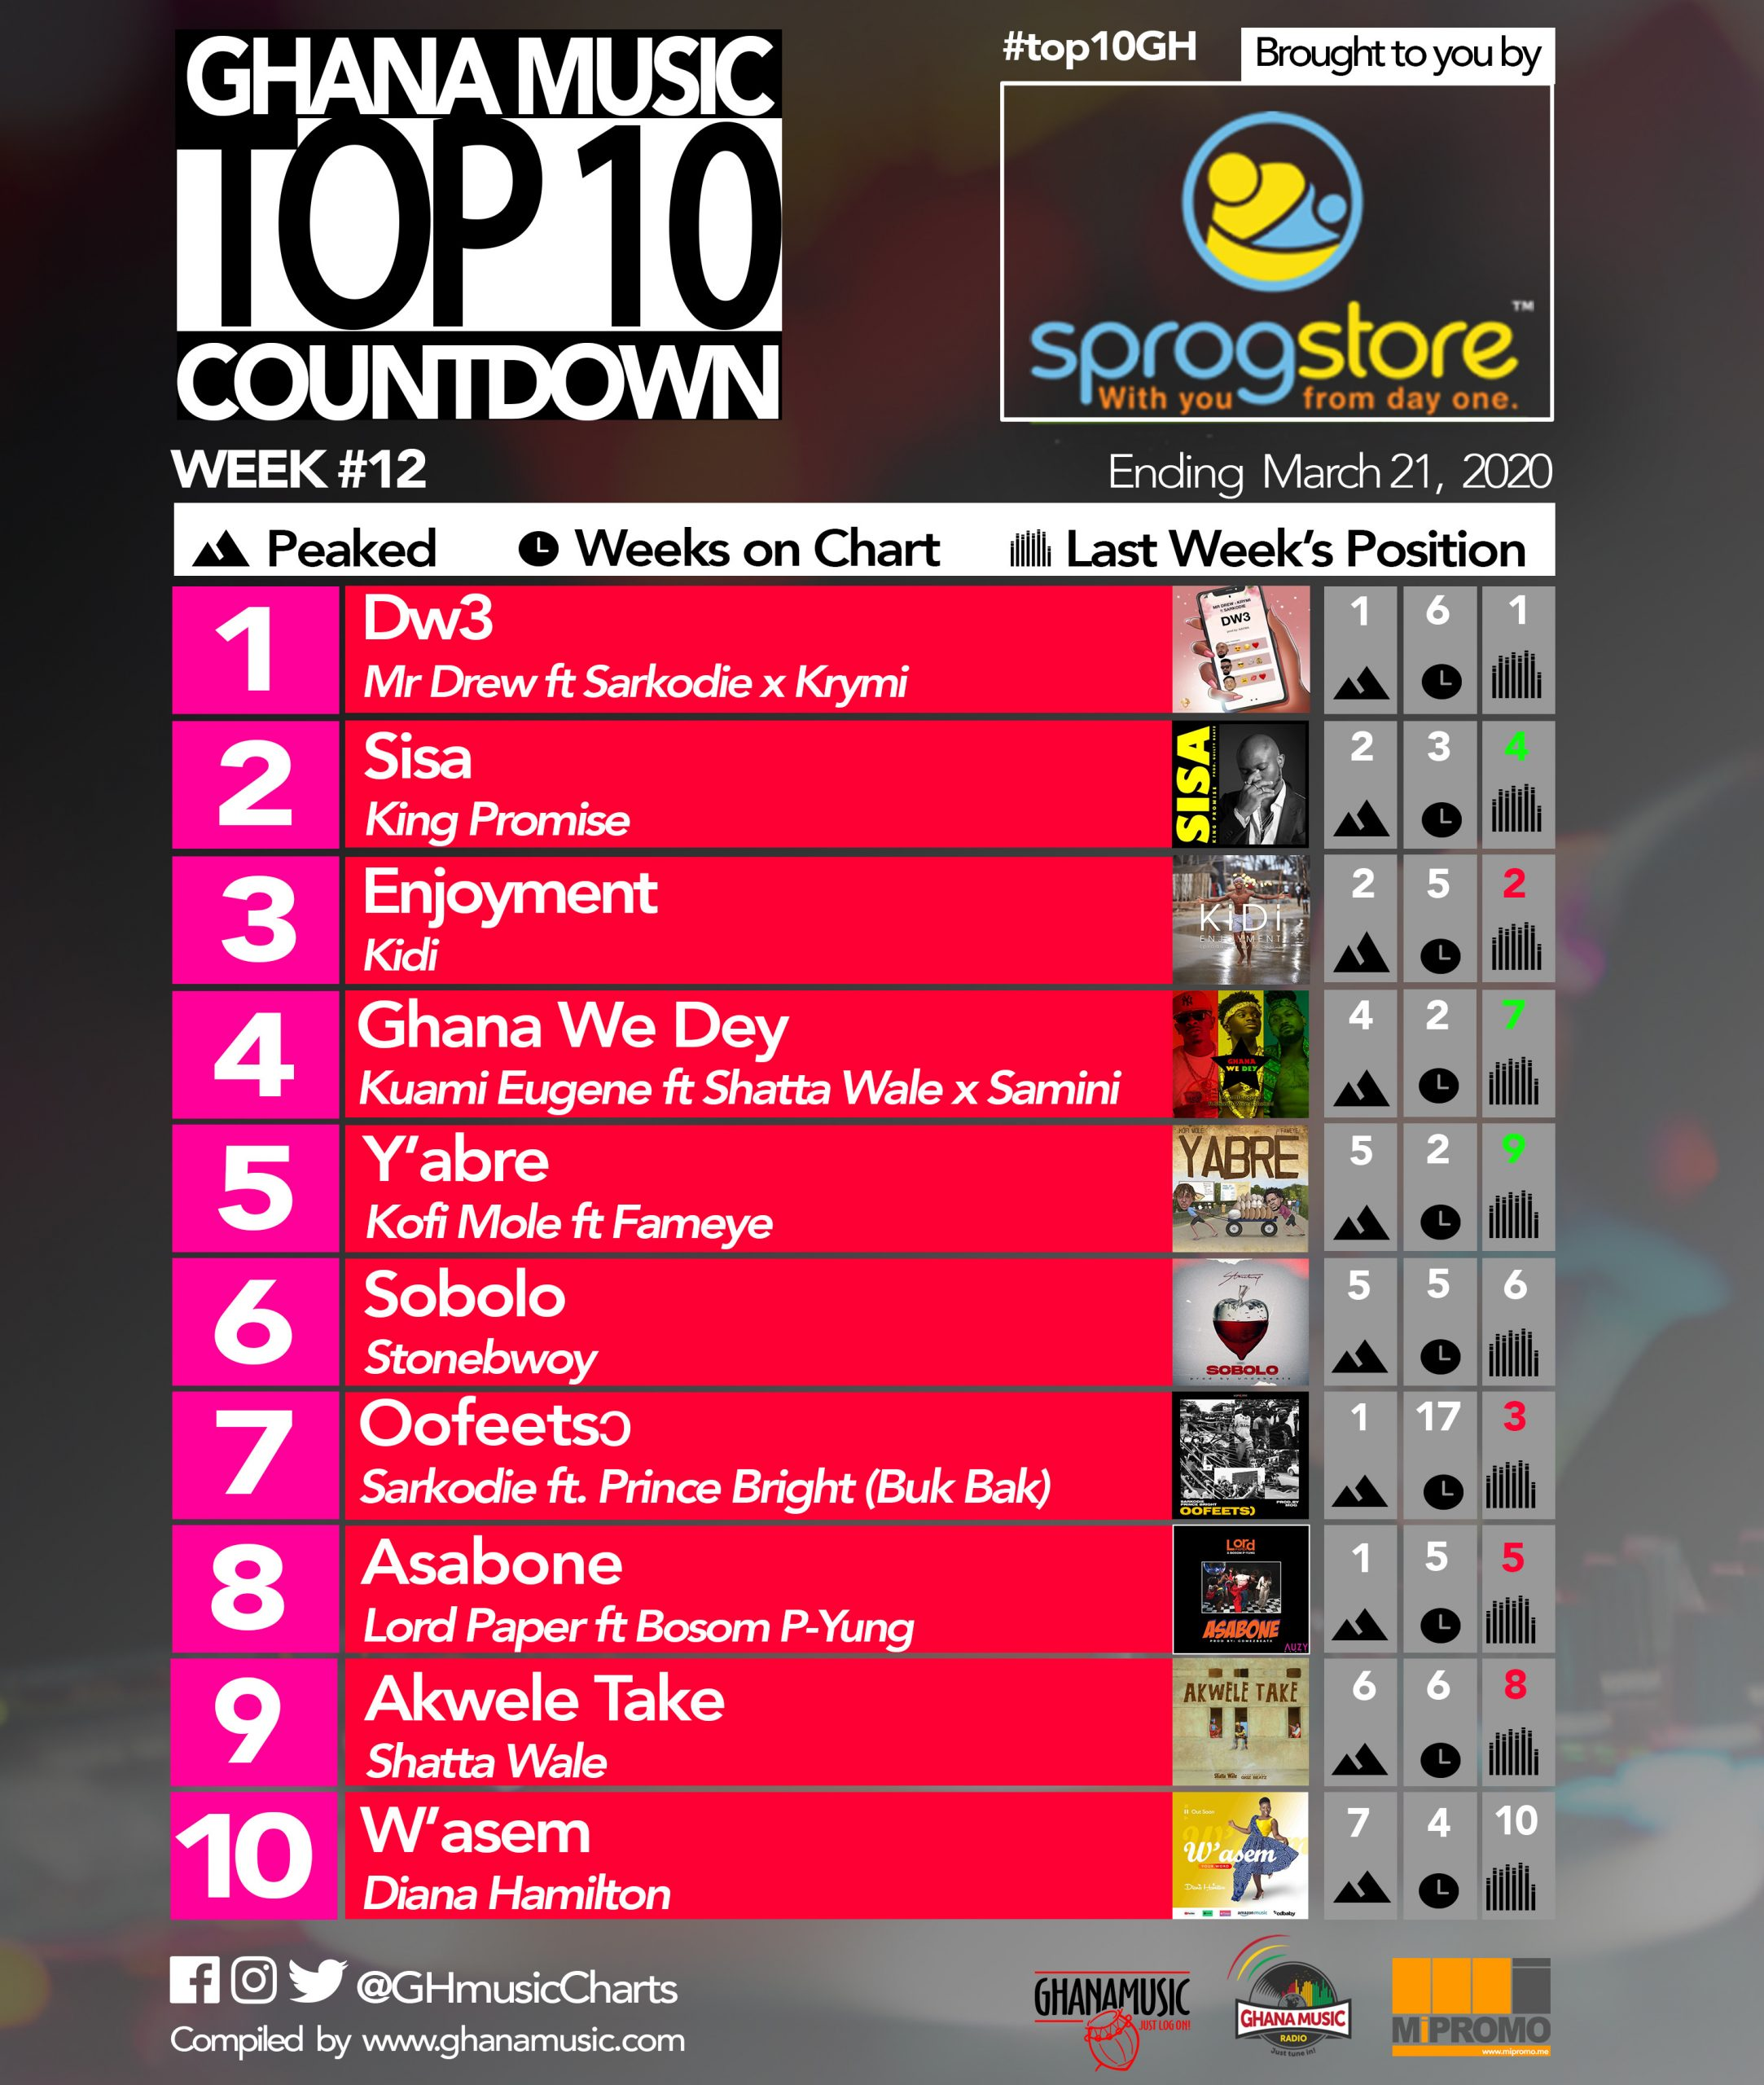 2020 Week 12: Ghana Music Top 10 Countdown